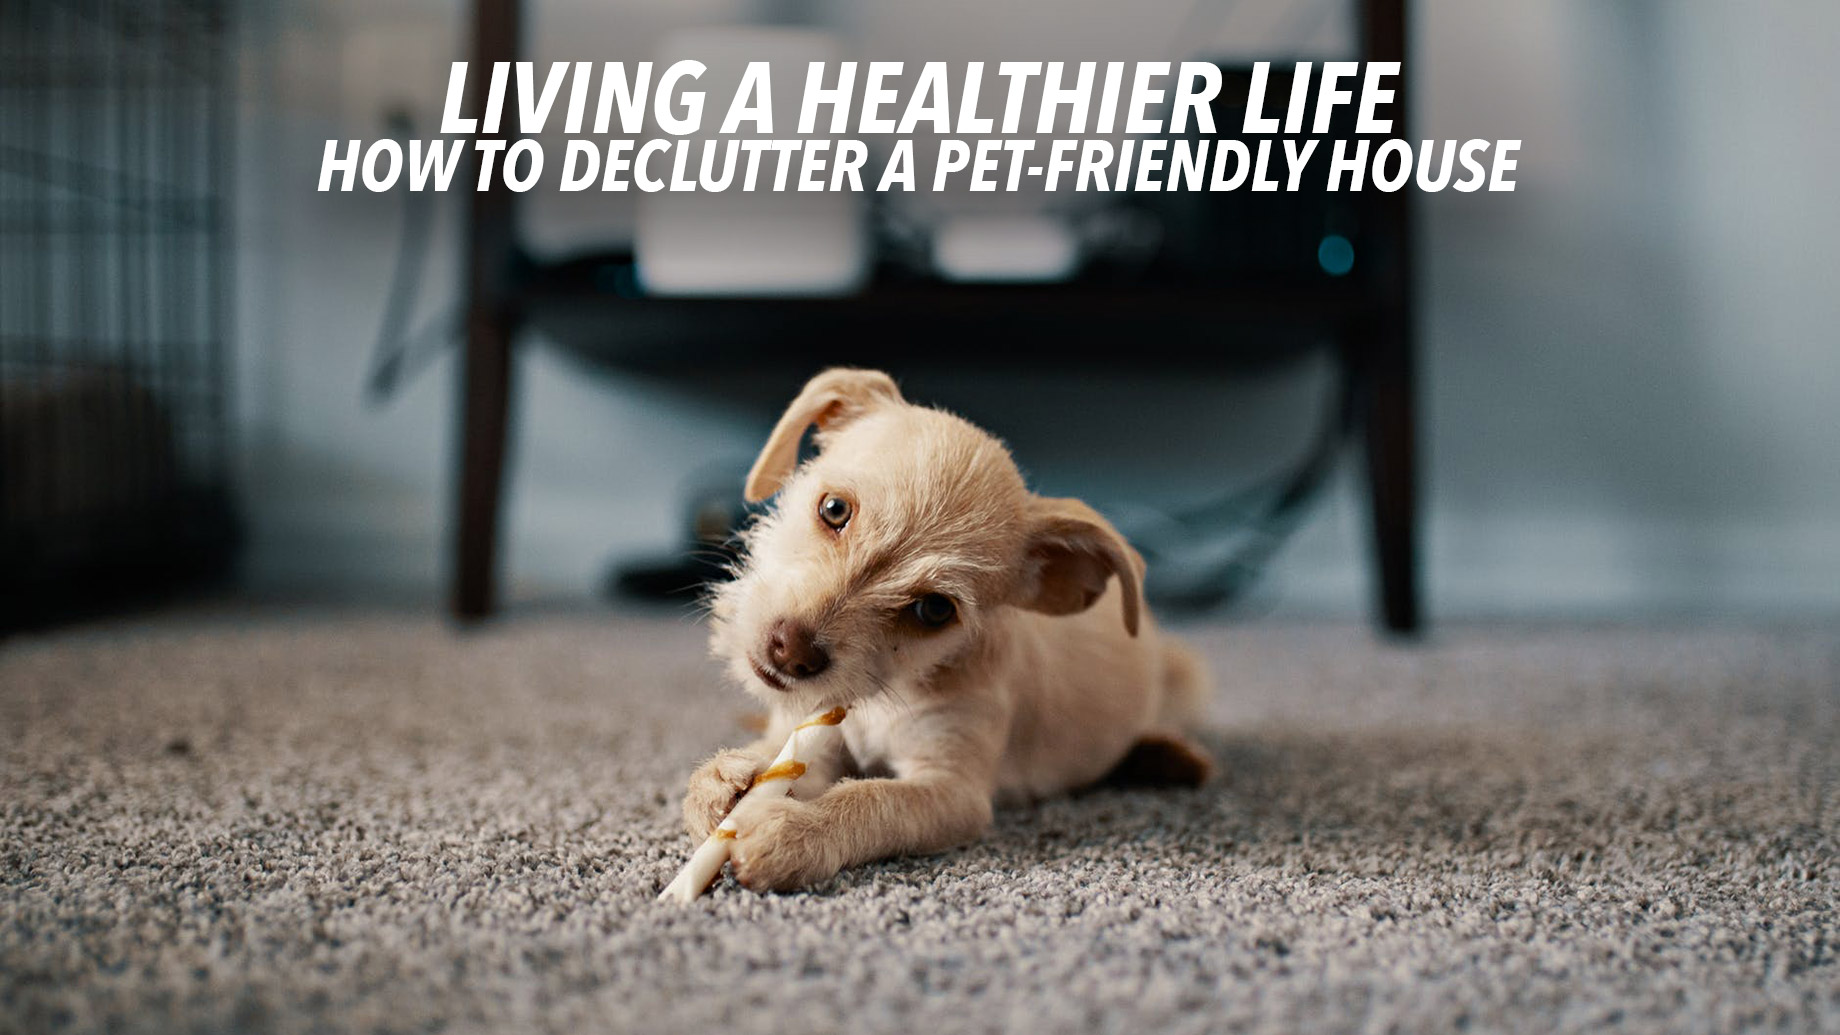 Living A Healthier Life - How To Declutter A Pet-Friendly House